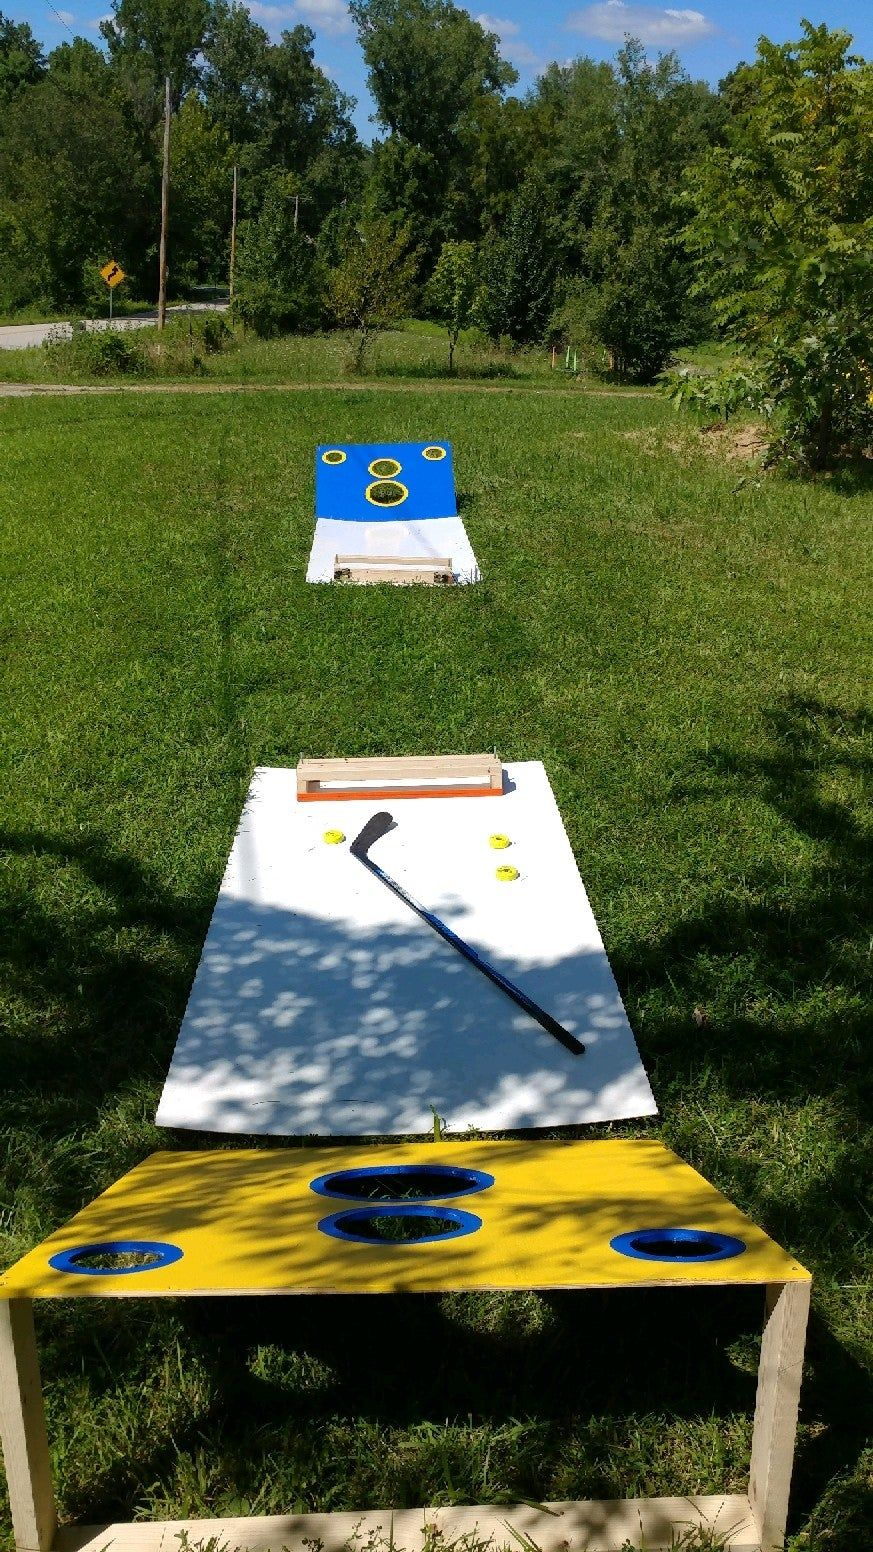 From A Place Where We Love Our Yard Games And Ice Is A Little Harder To Find Missouri I Present To You Hockey Cornhole H Yard Games Diy Yard Games Hockey